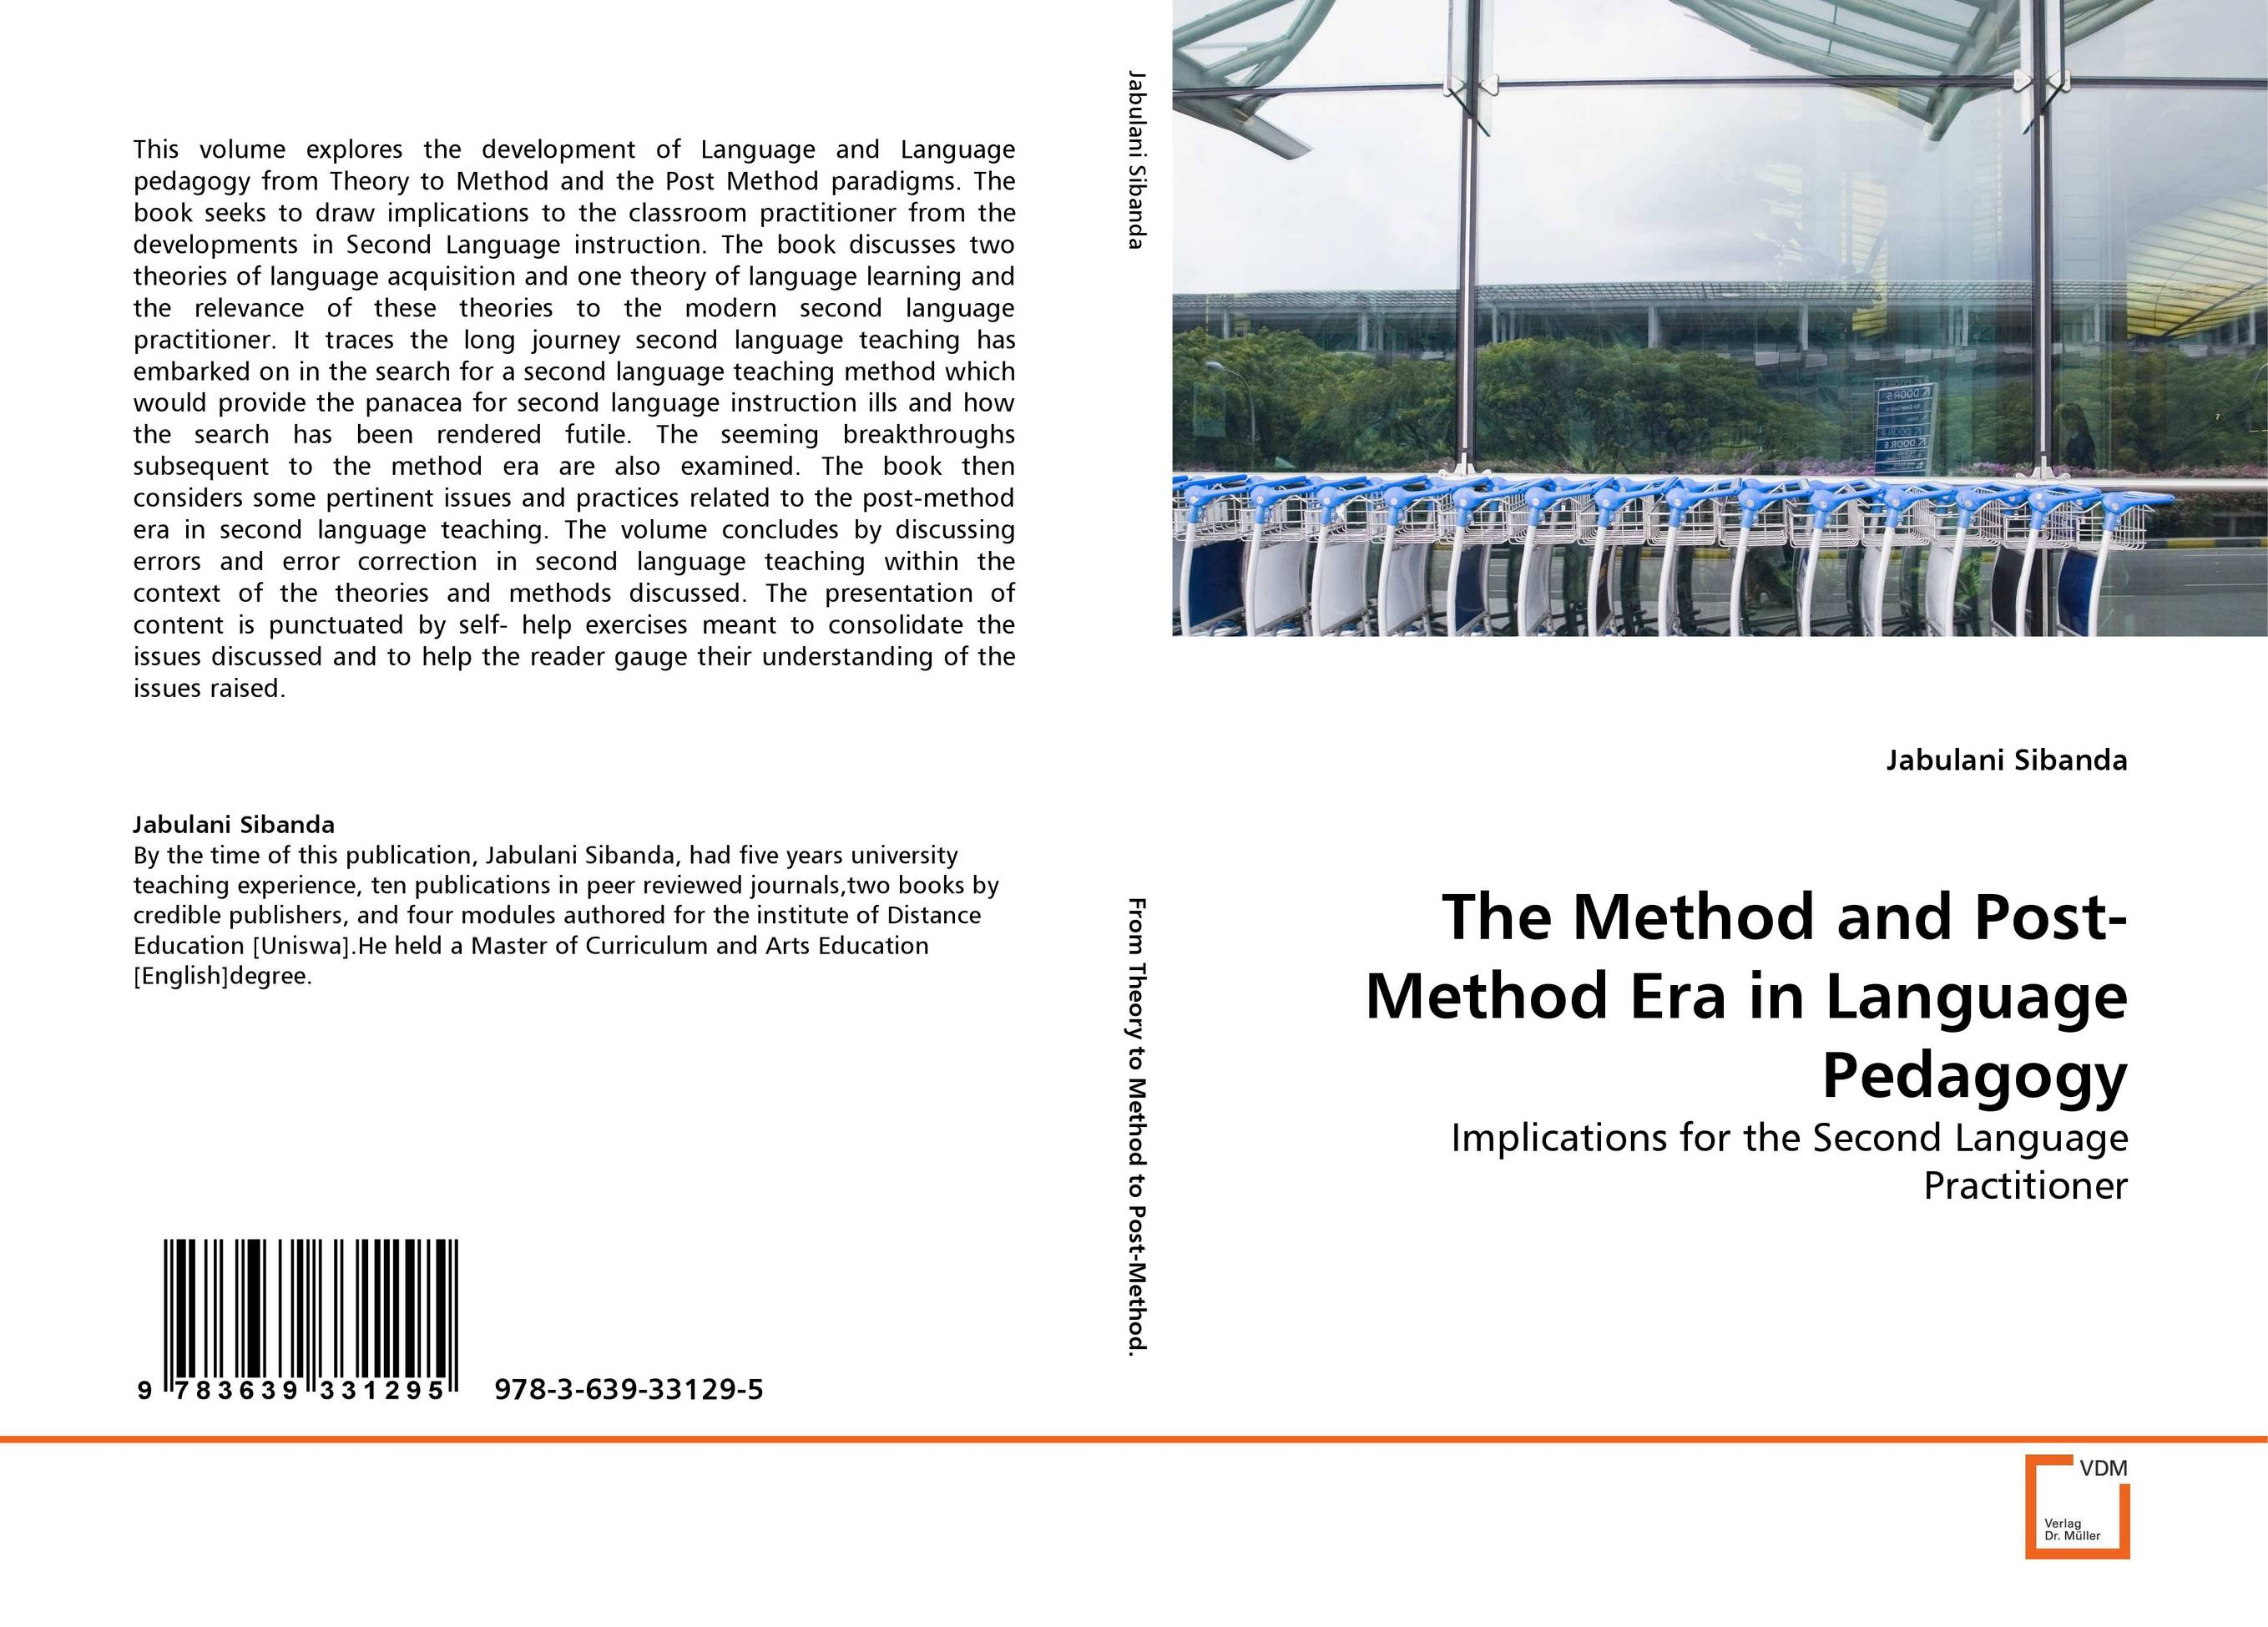 The Method and Post-Method Era in Language Pedagogy jane ouma alternative approaches to pedagogy